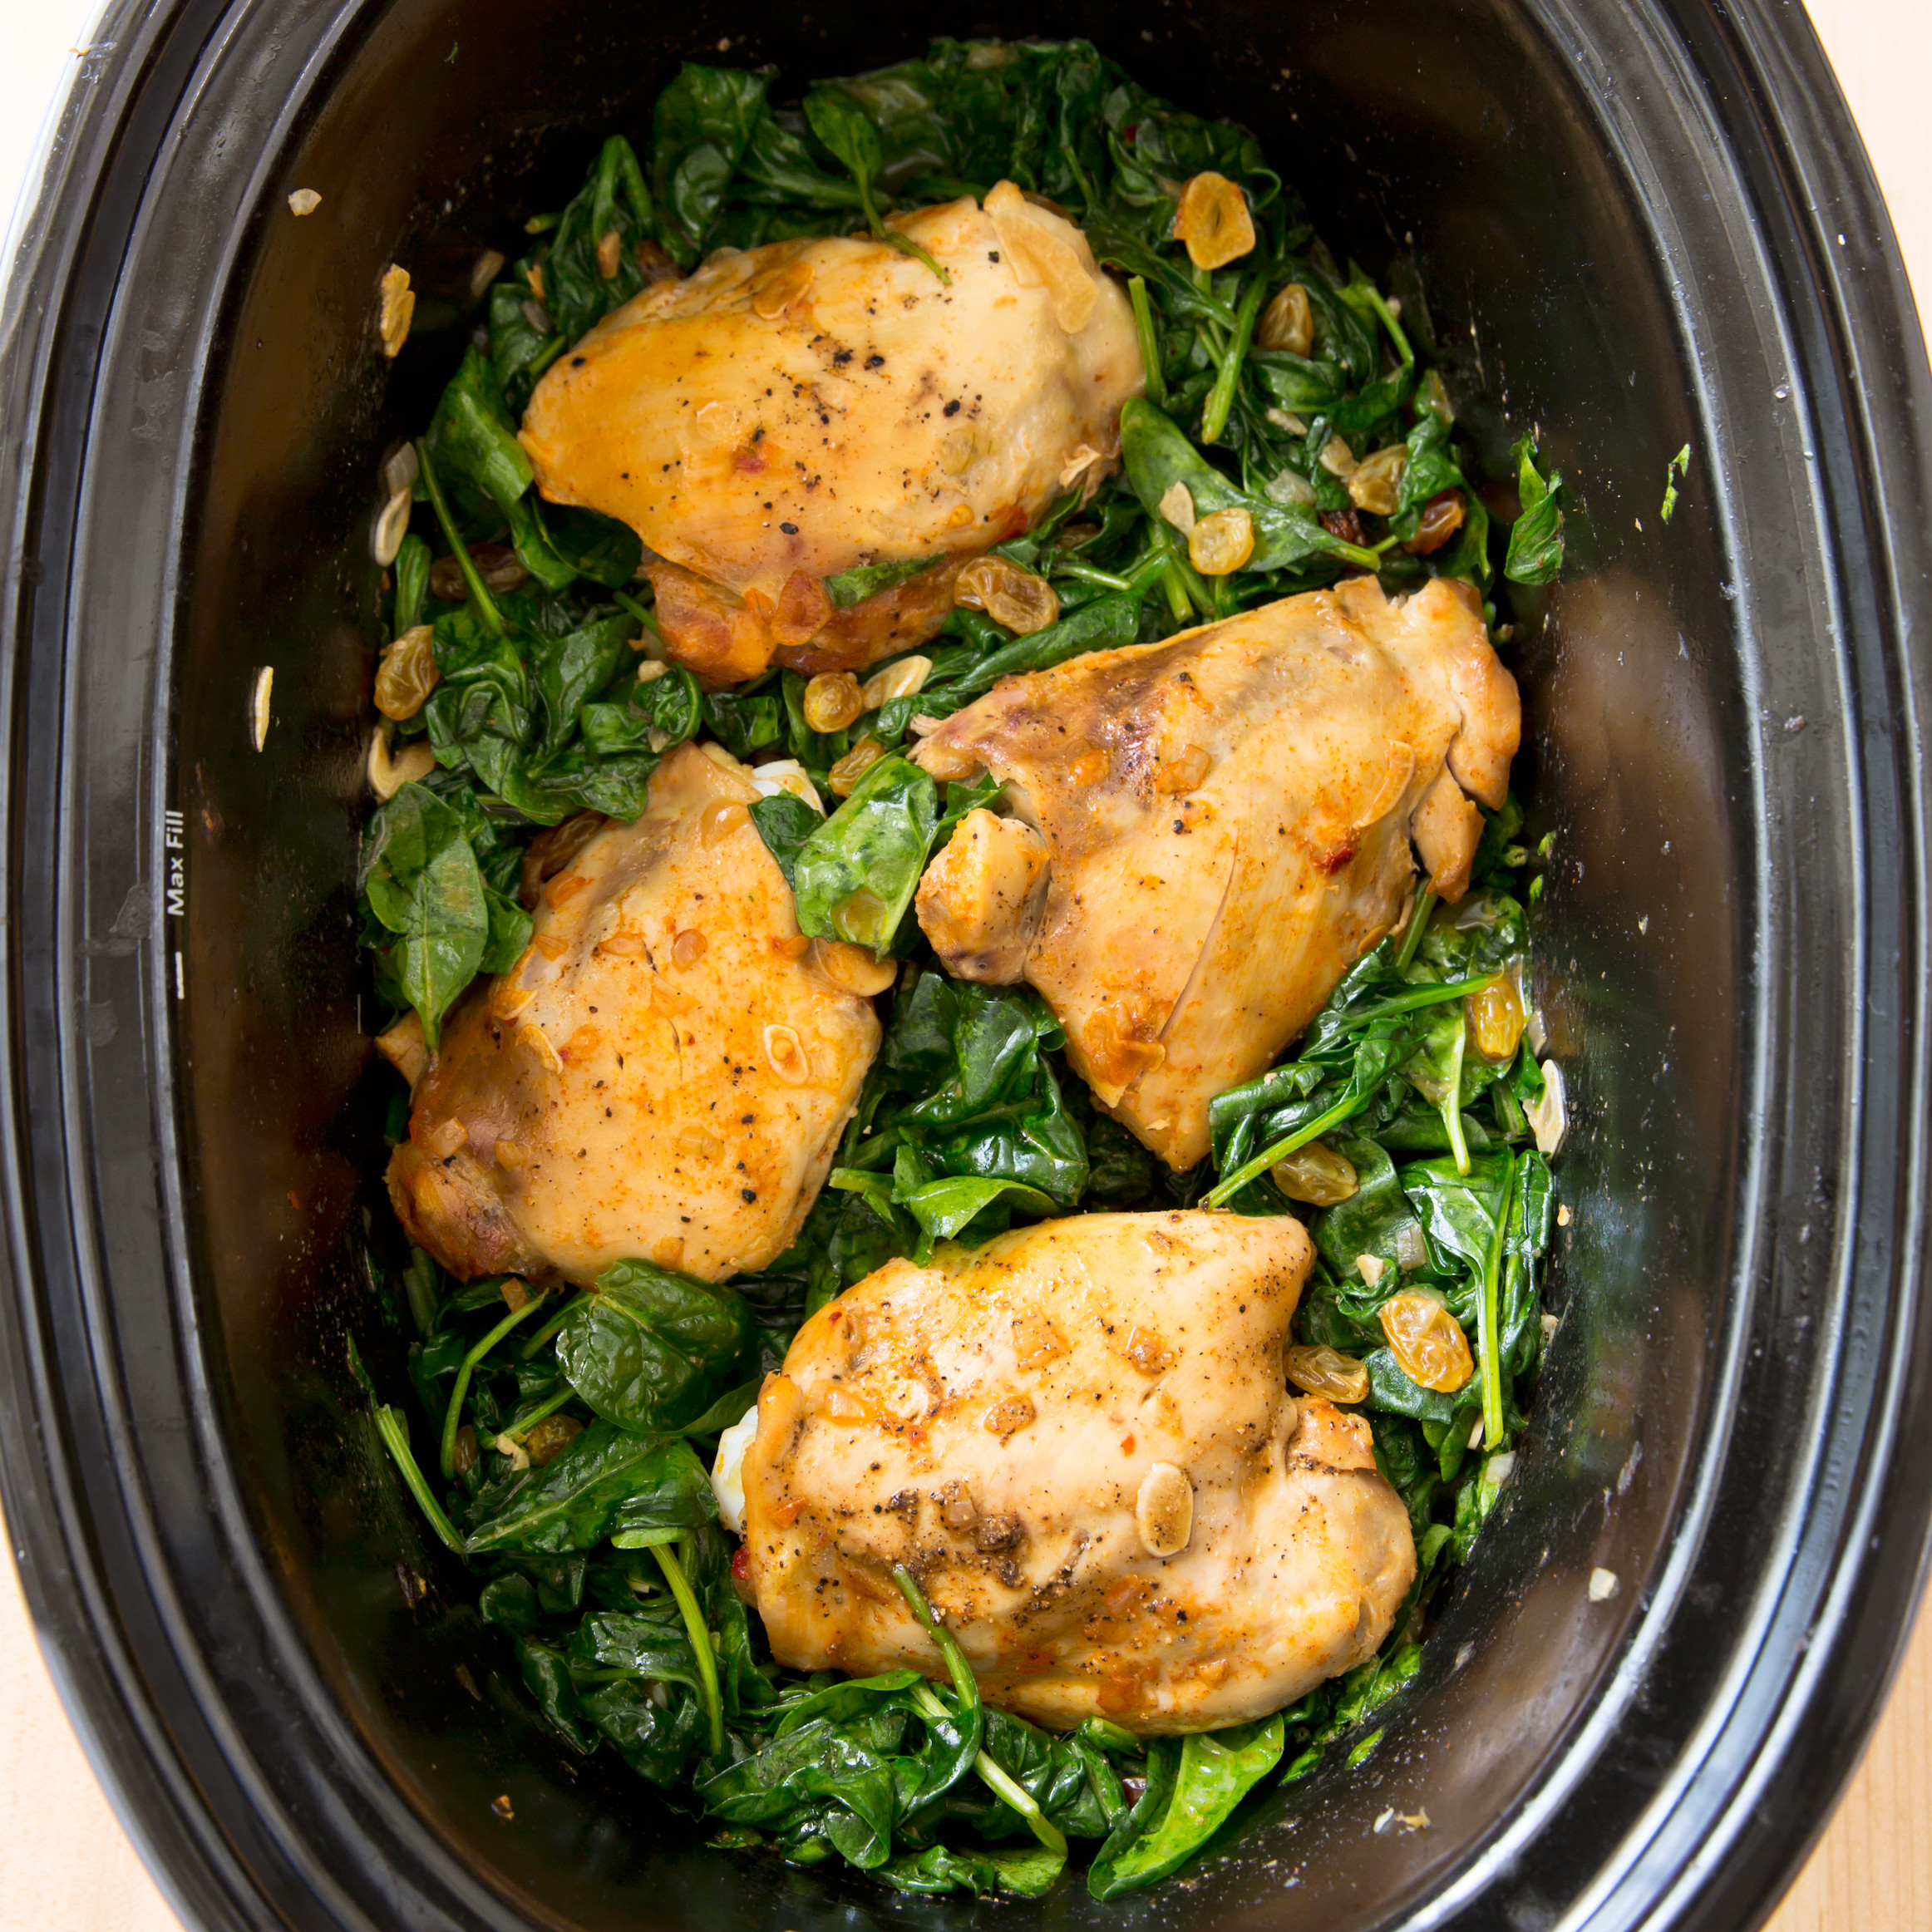 Healthy Slow Cooker Chicken Thighs  Slow Cooker Braised Chicken Thighs with Garlicky Spinach